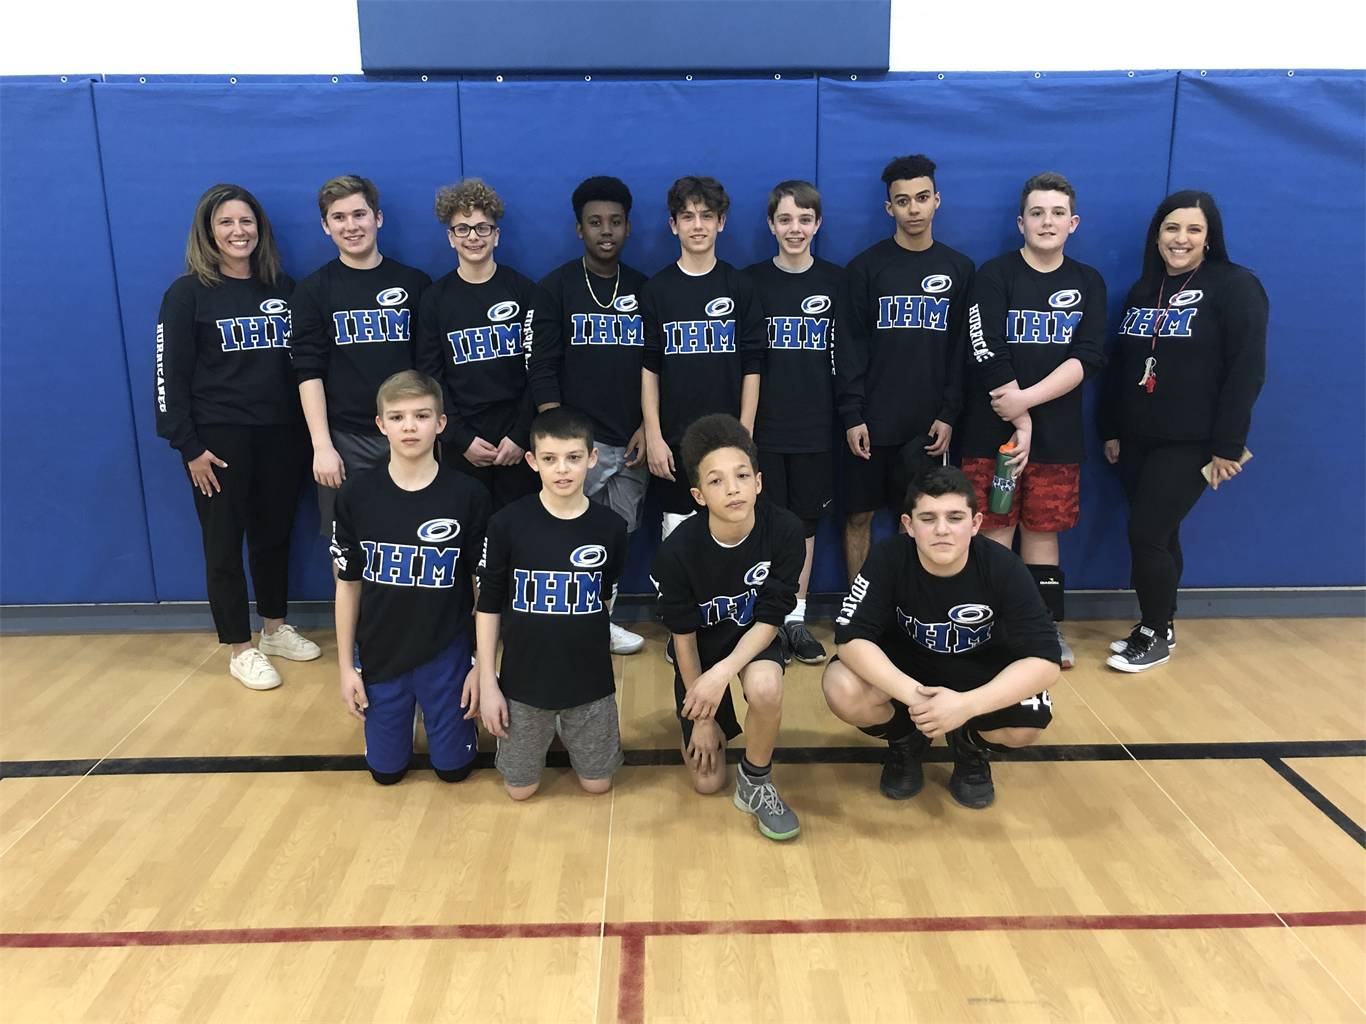 Good luck in round 2 of playoffs this week,  Sr. Boys Volleyball!